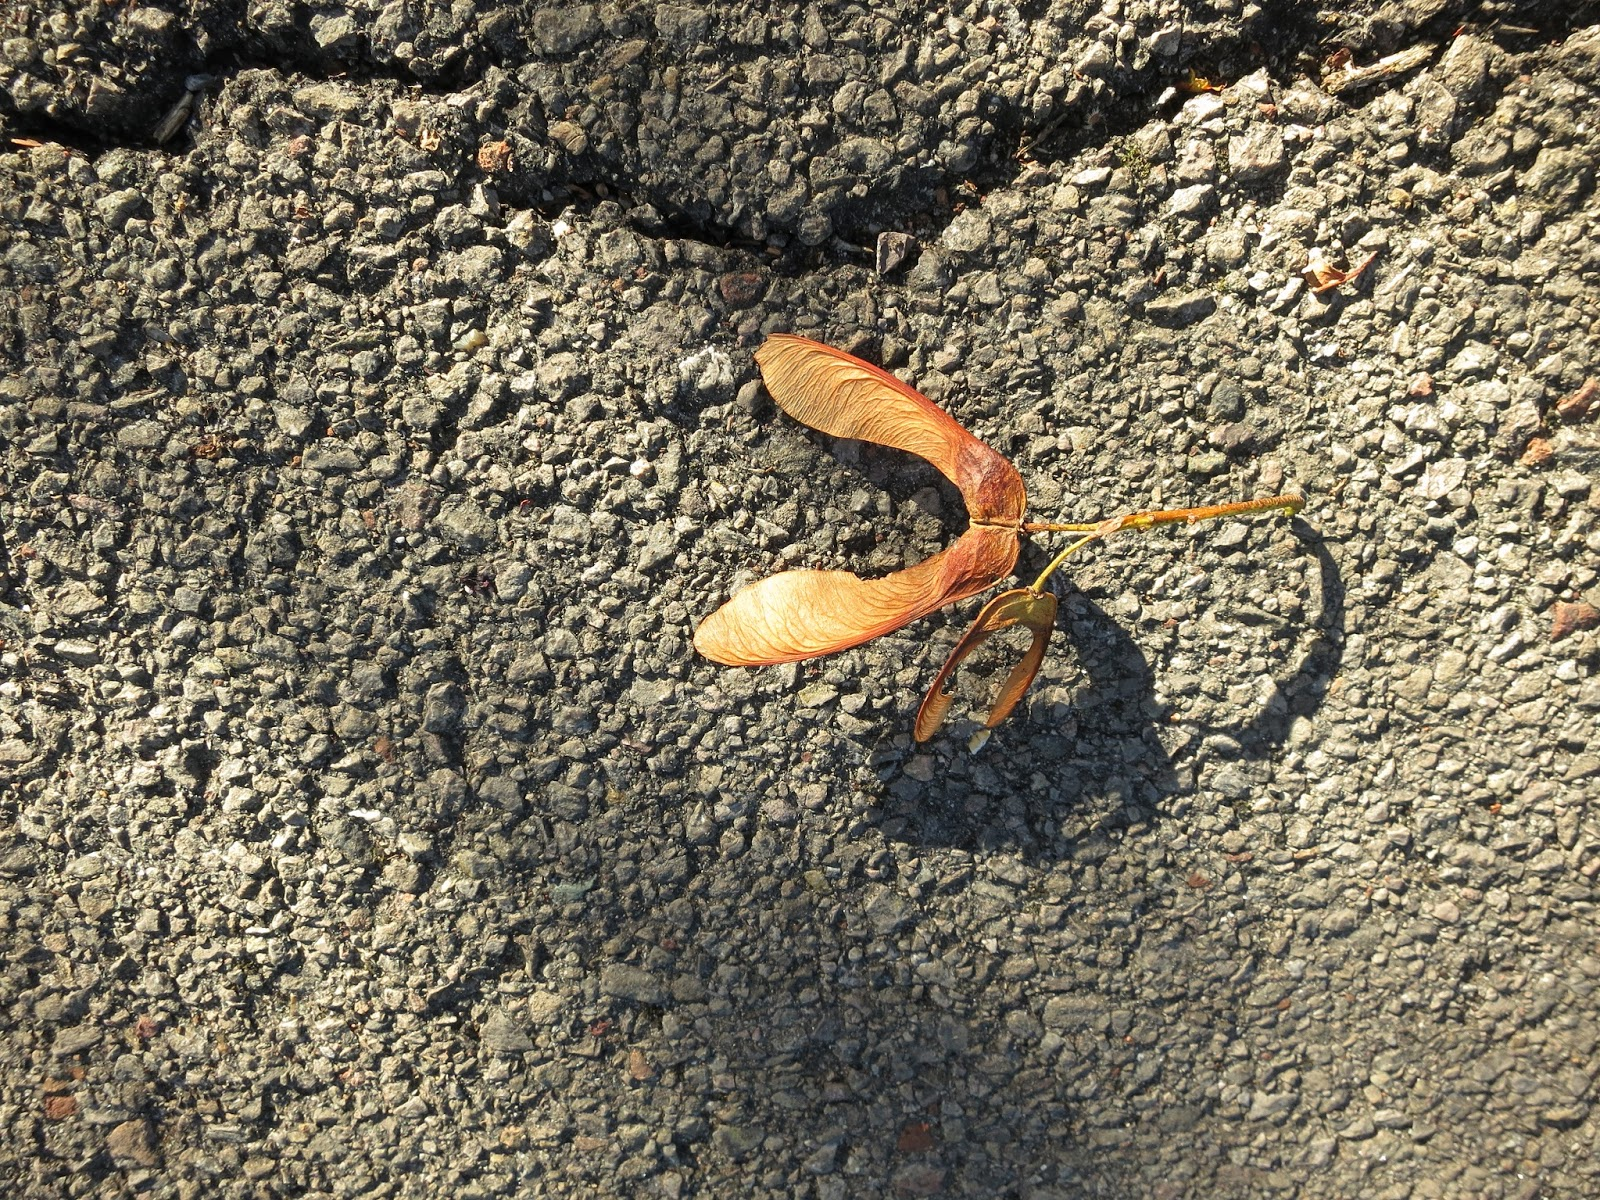 Sycamore seed and its shadow on a tarmac path